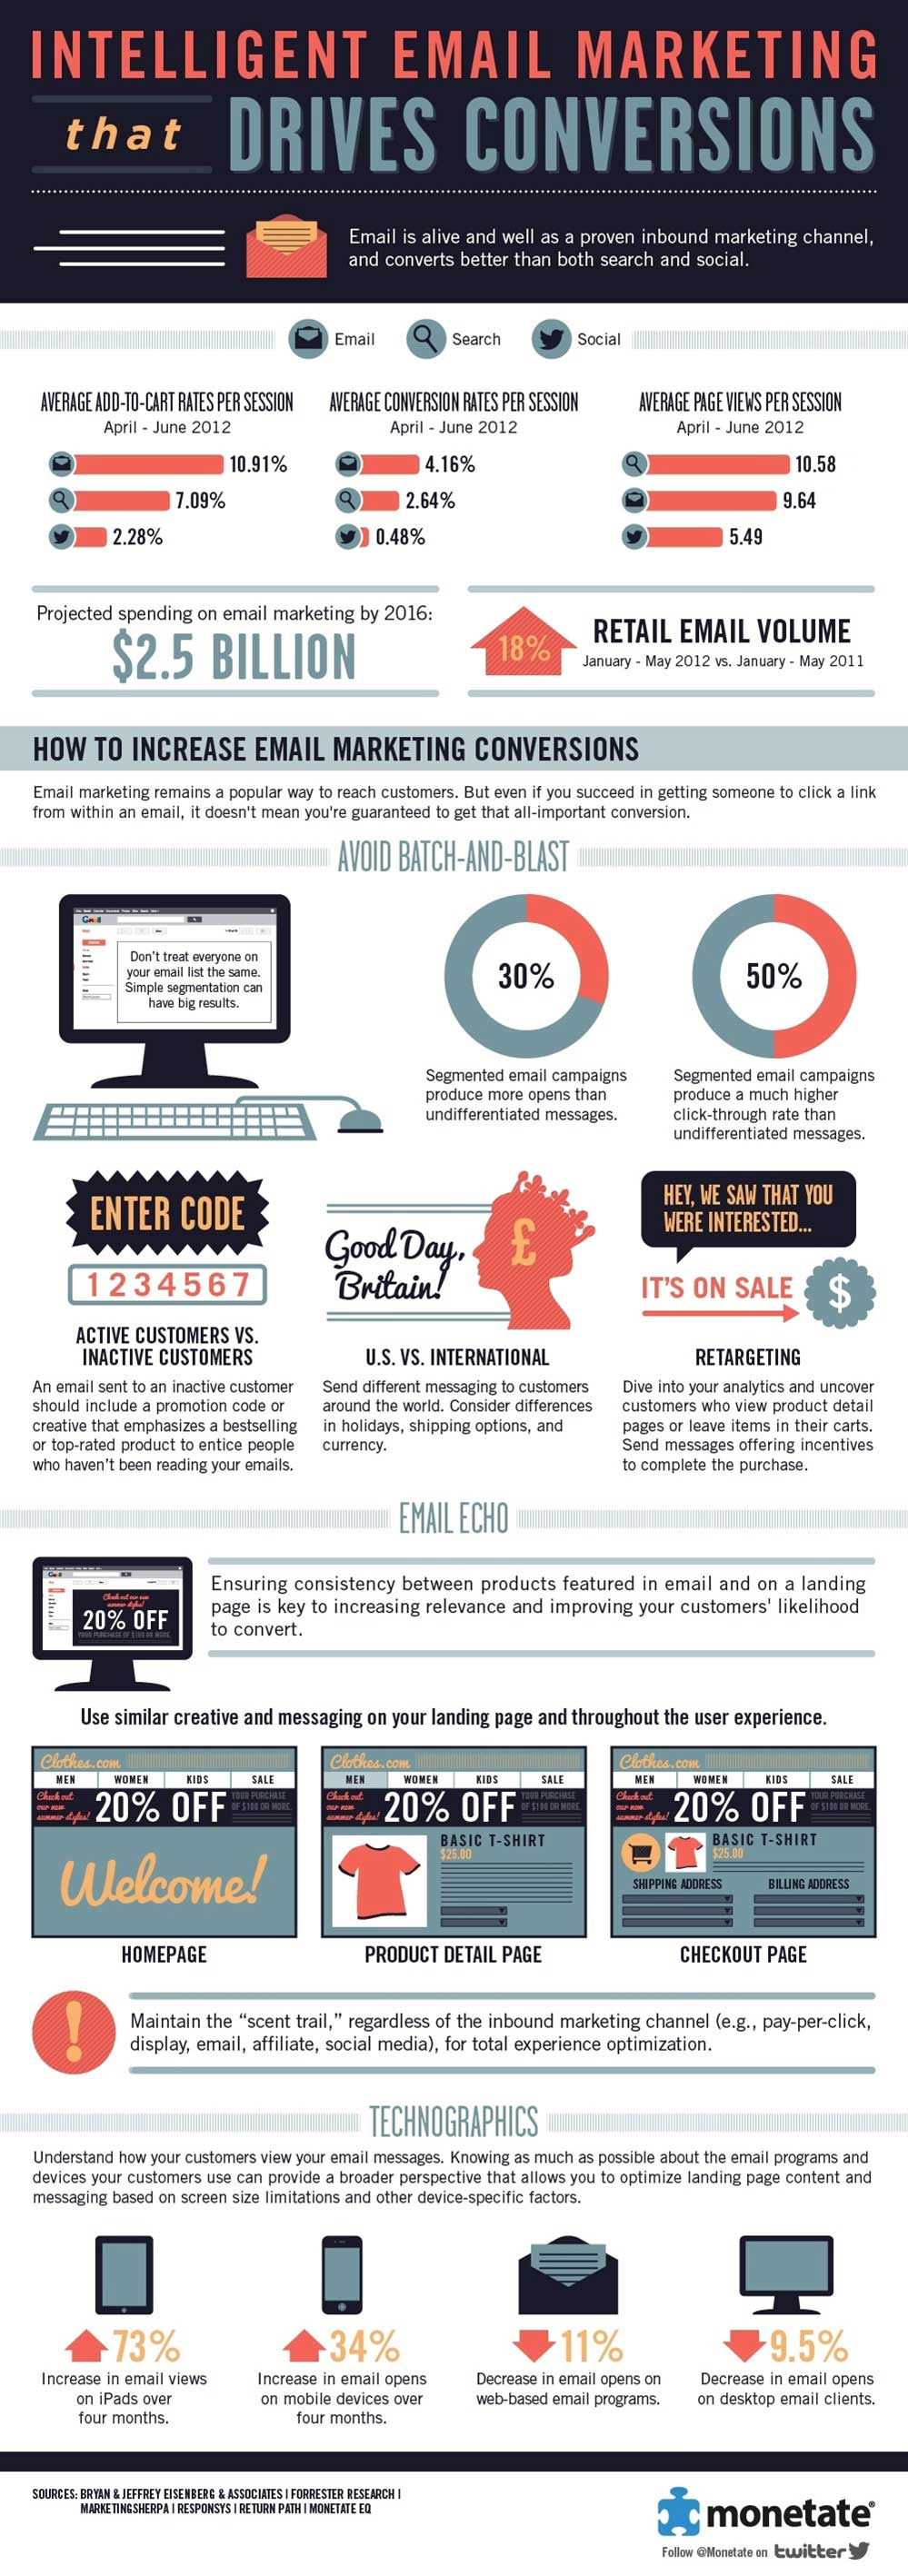 How to Increase Email Marketing Conversions [Infographic]